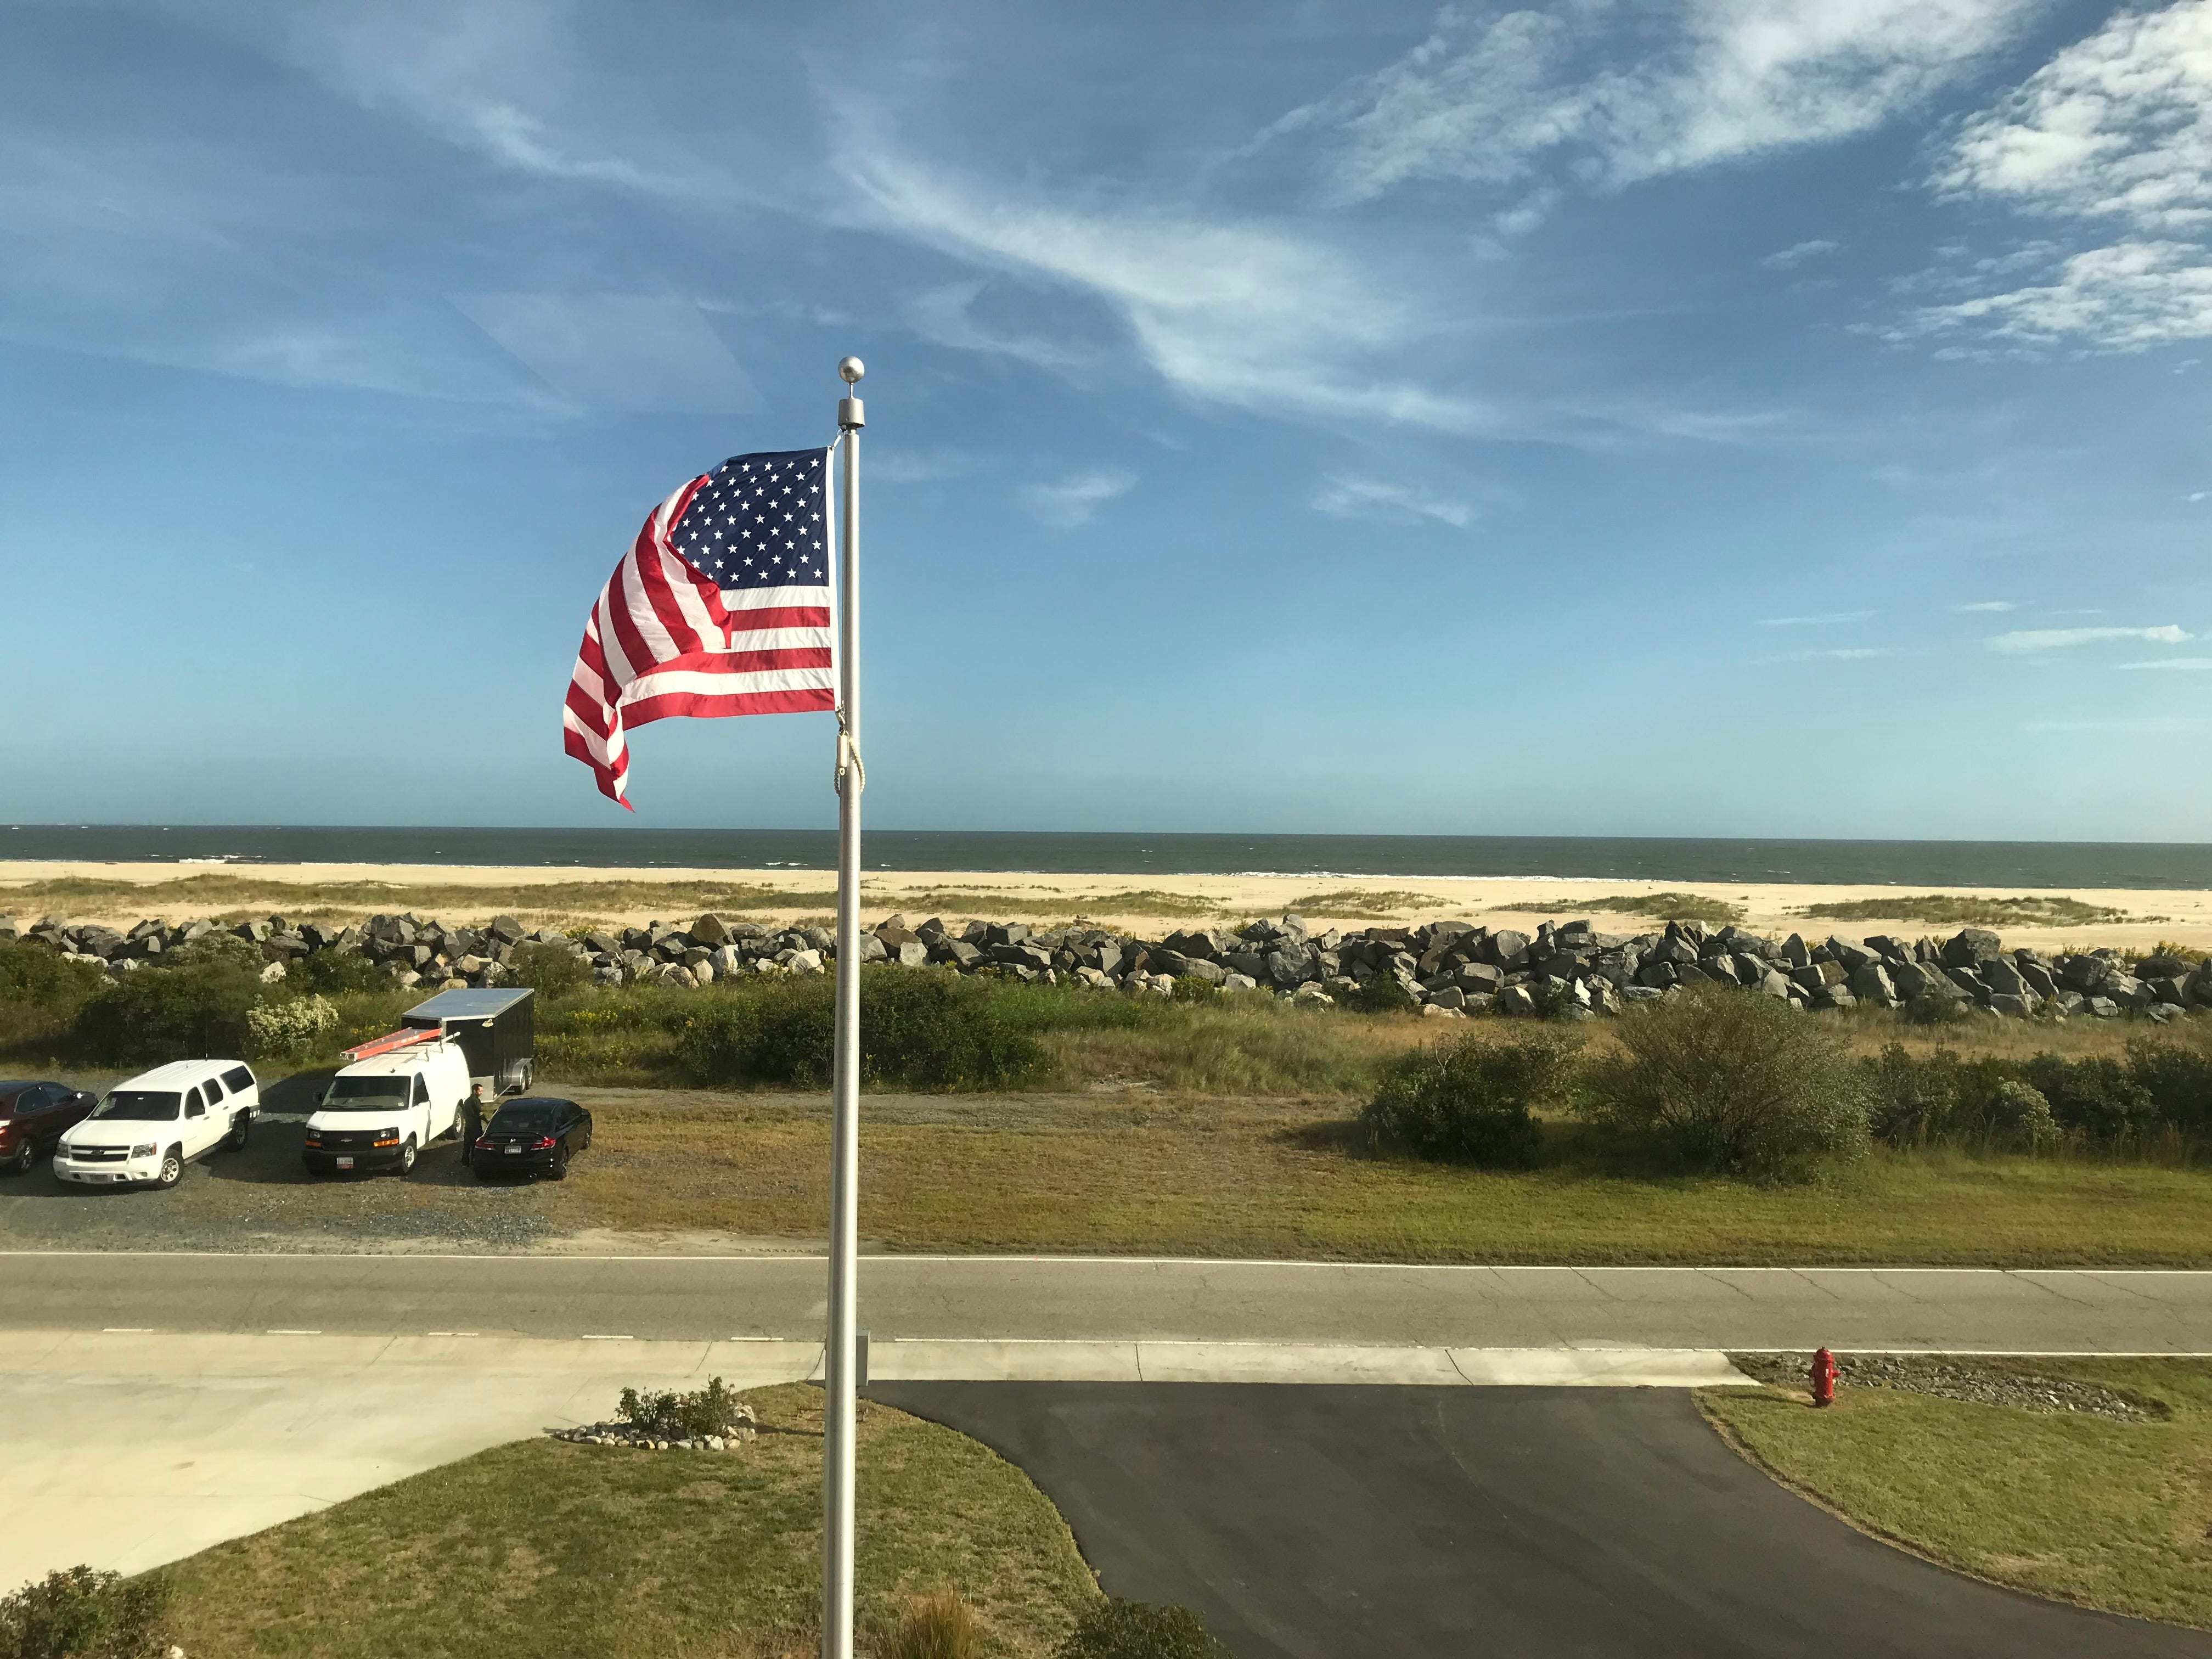 The new fire station at Wallops Flight Facility overlooks the island's beach.